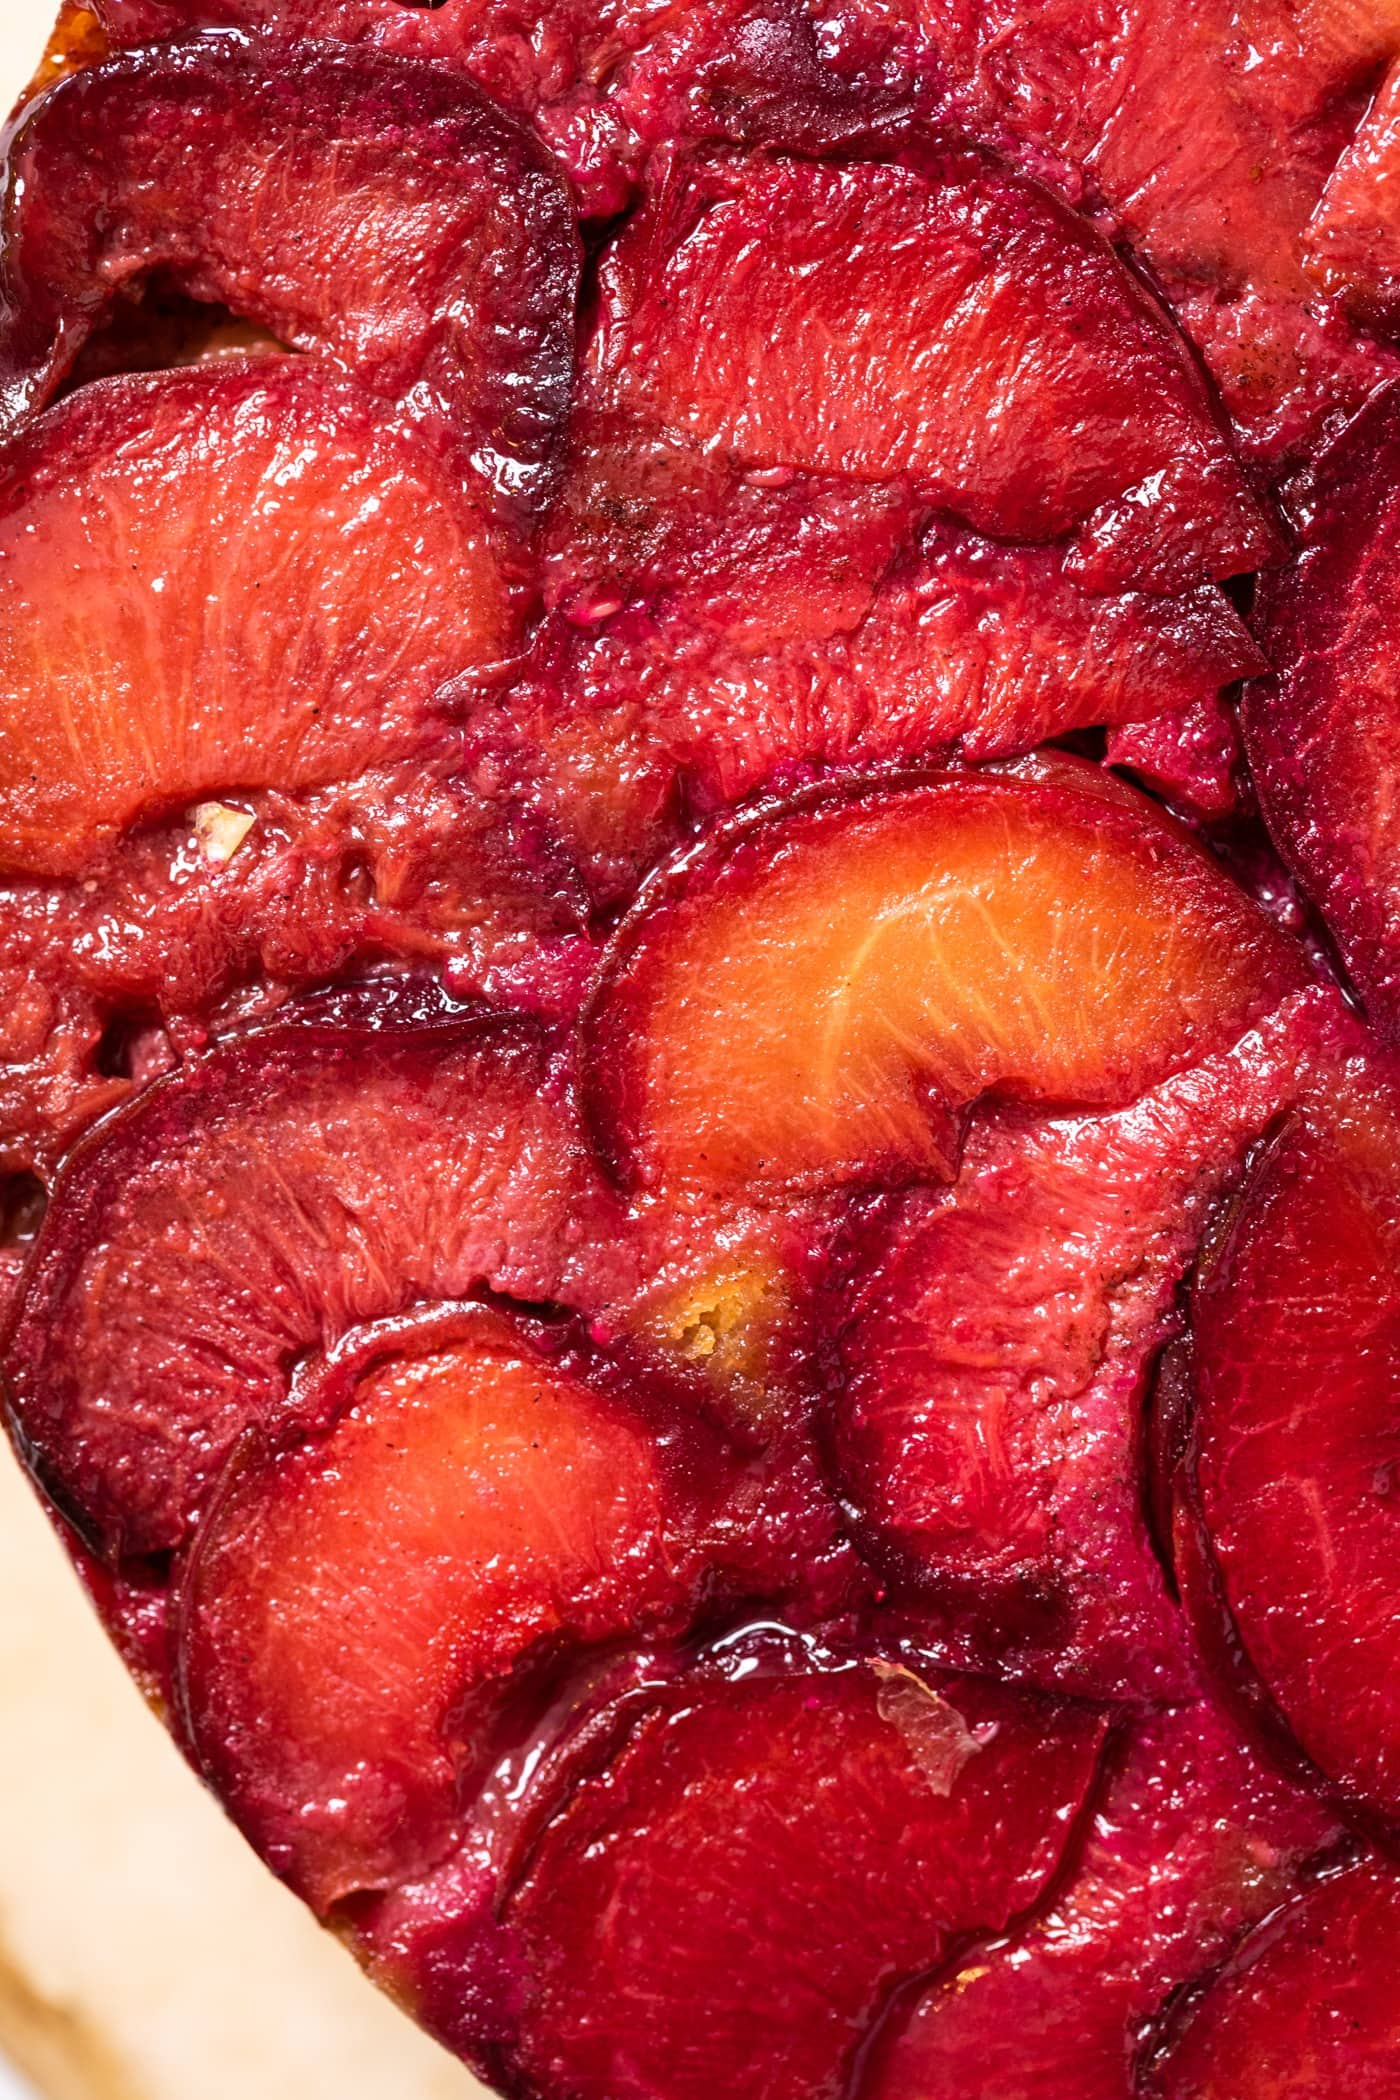 Top down close up view of slices of baking plum sitting on top of cornmeal cake with bright reds and light yellows